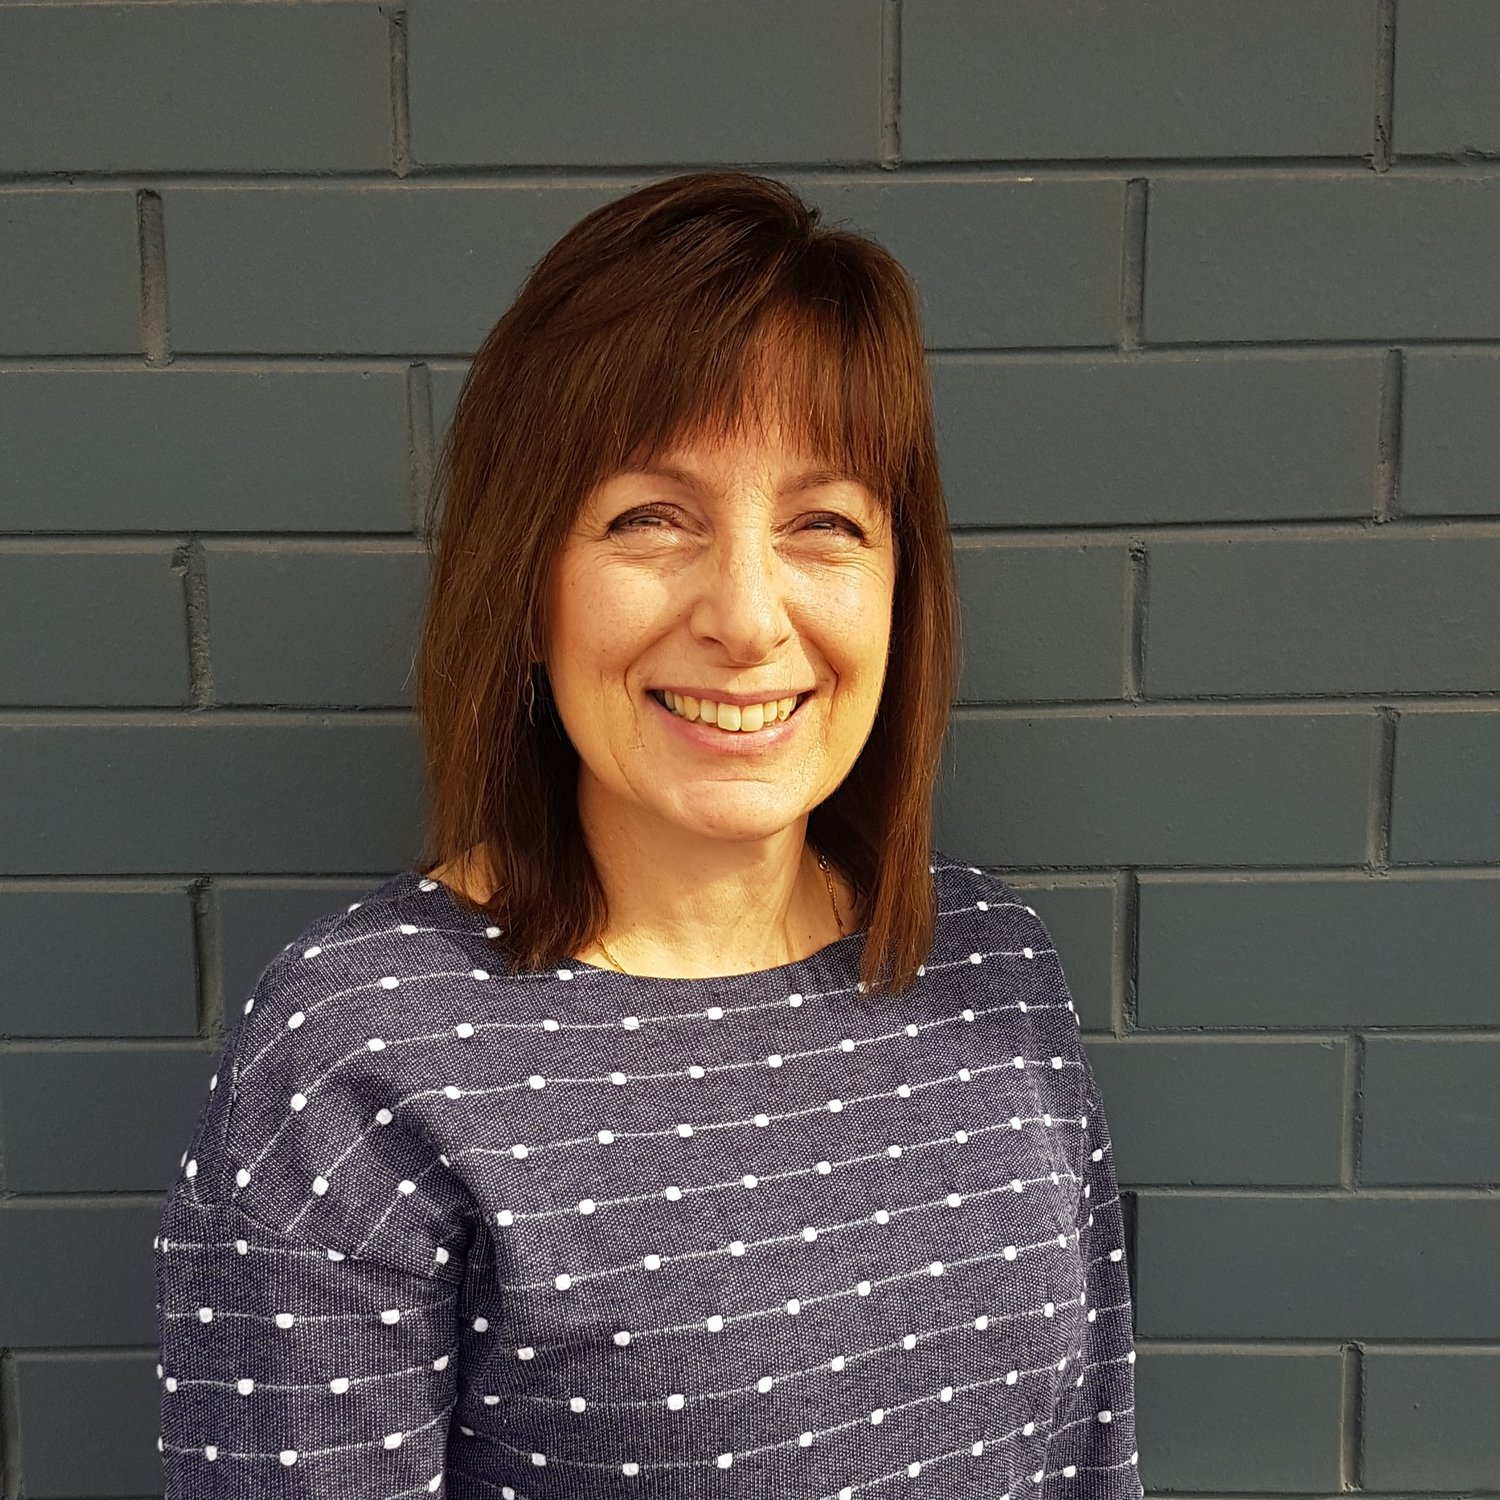 Sue Begley - Accounts Manager - A much needed addition to a growing team, Sue has joined Steadfast with extensive experience in property management administration.